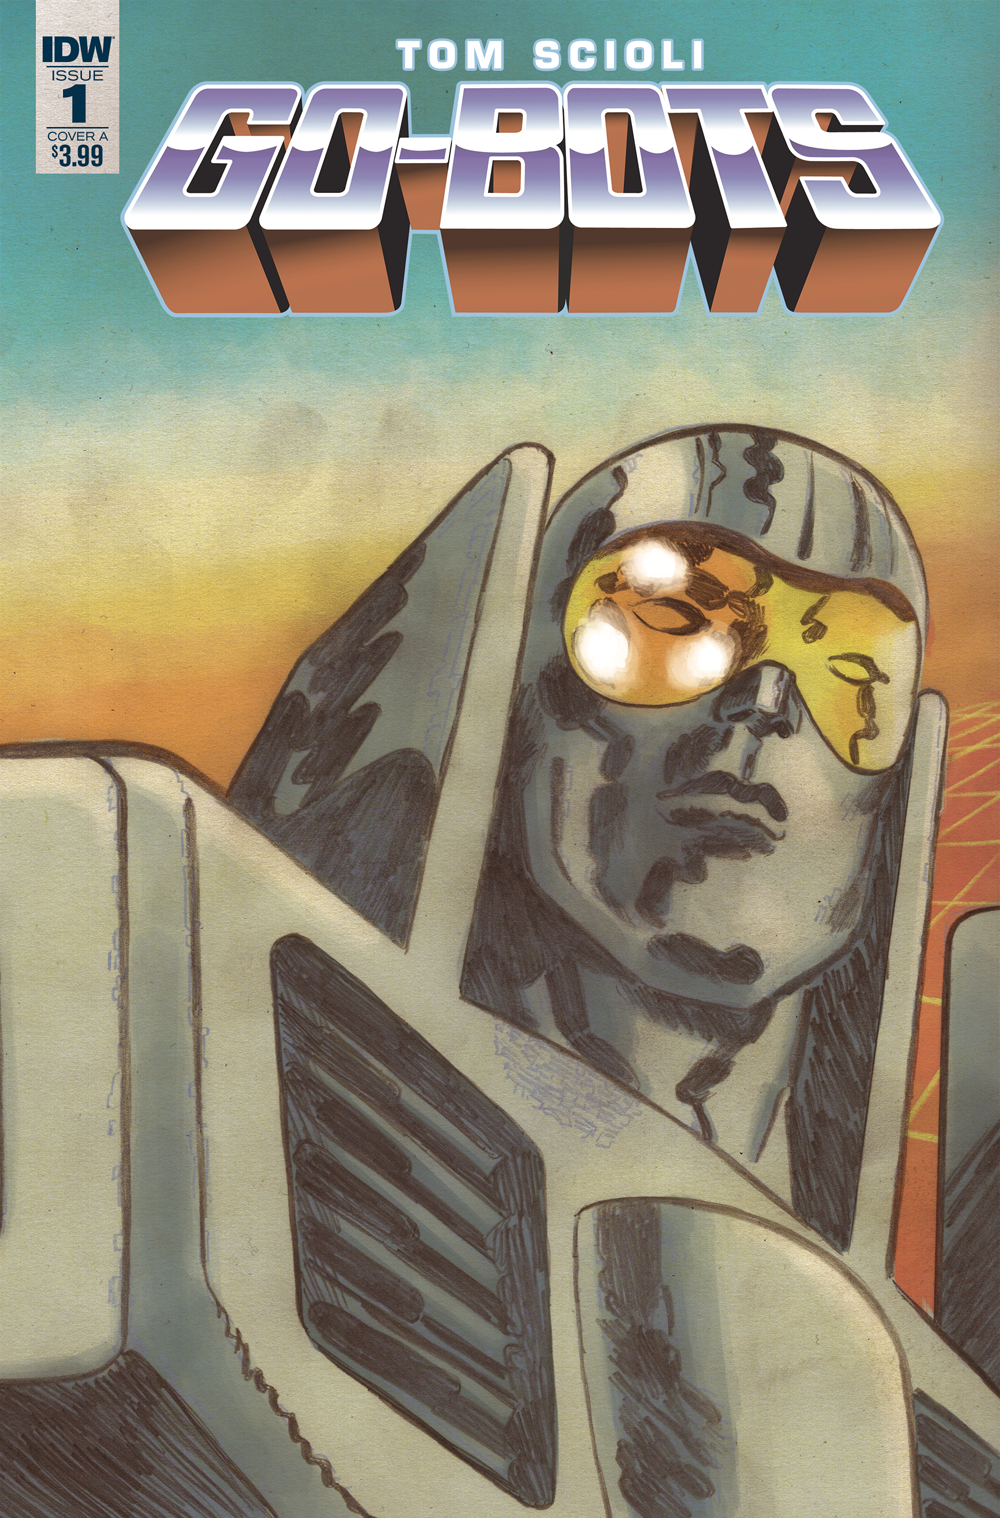 Go-Bots #1  is the Comic of the Week for 11/21.